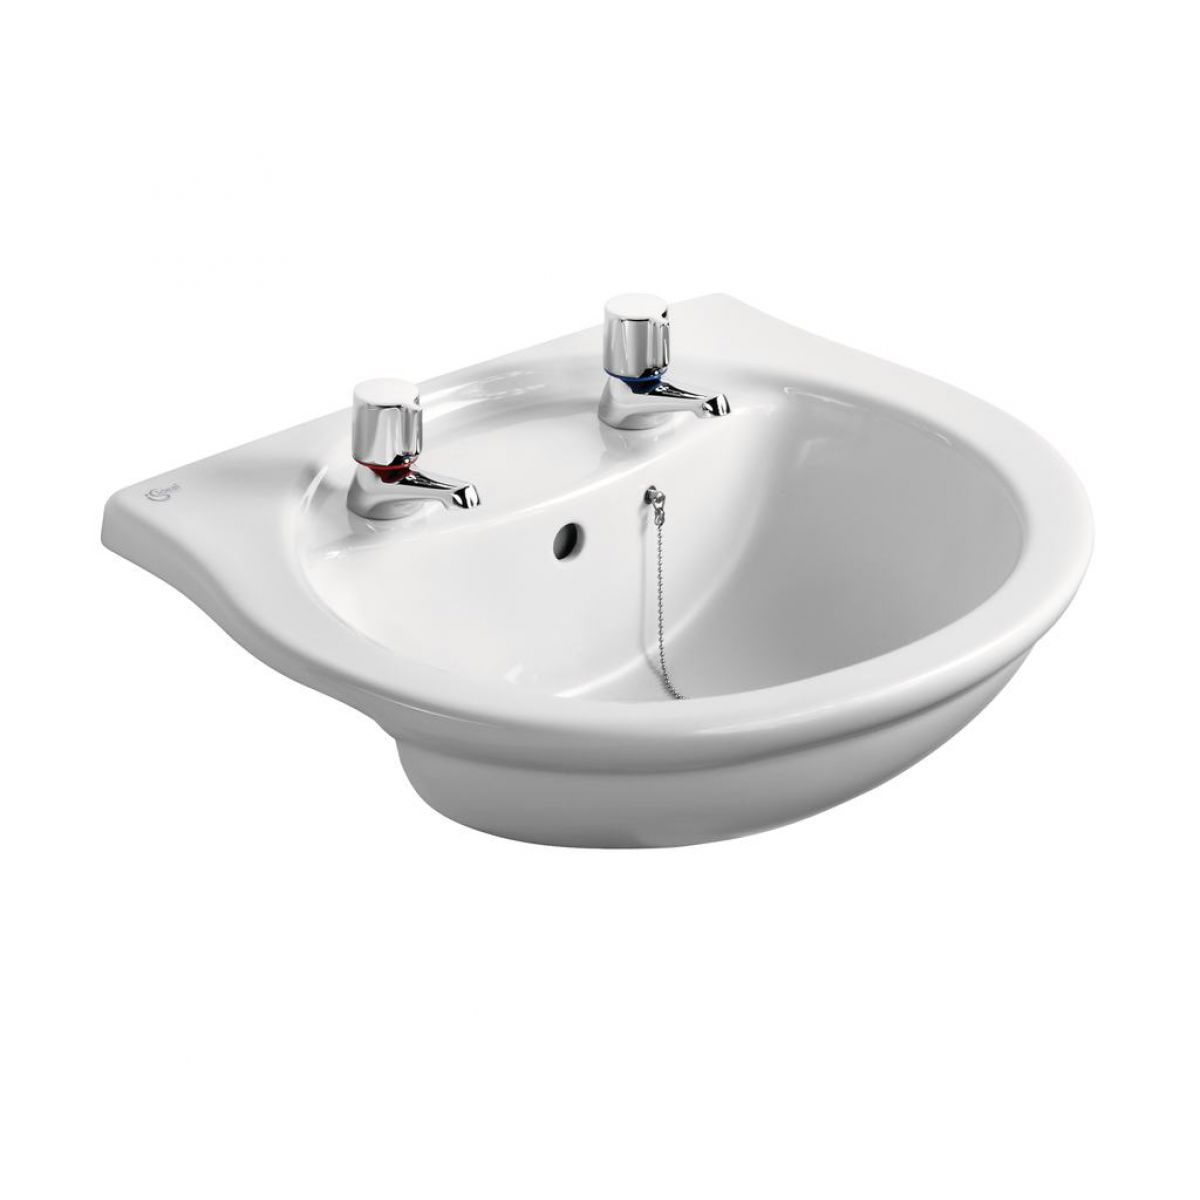 ideal standard alto semi countertop 55cm basin uk bathrooms. Black Bedroom Furniture Sets. Home Design Ideas